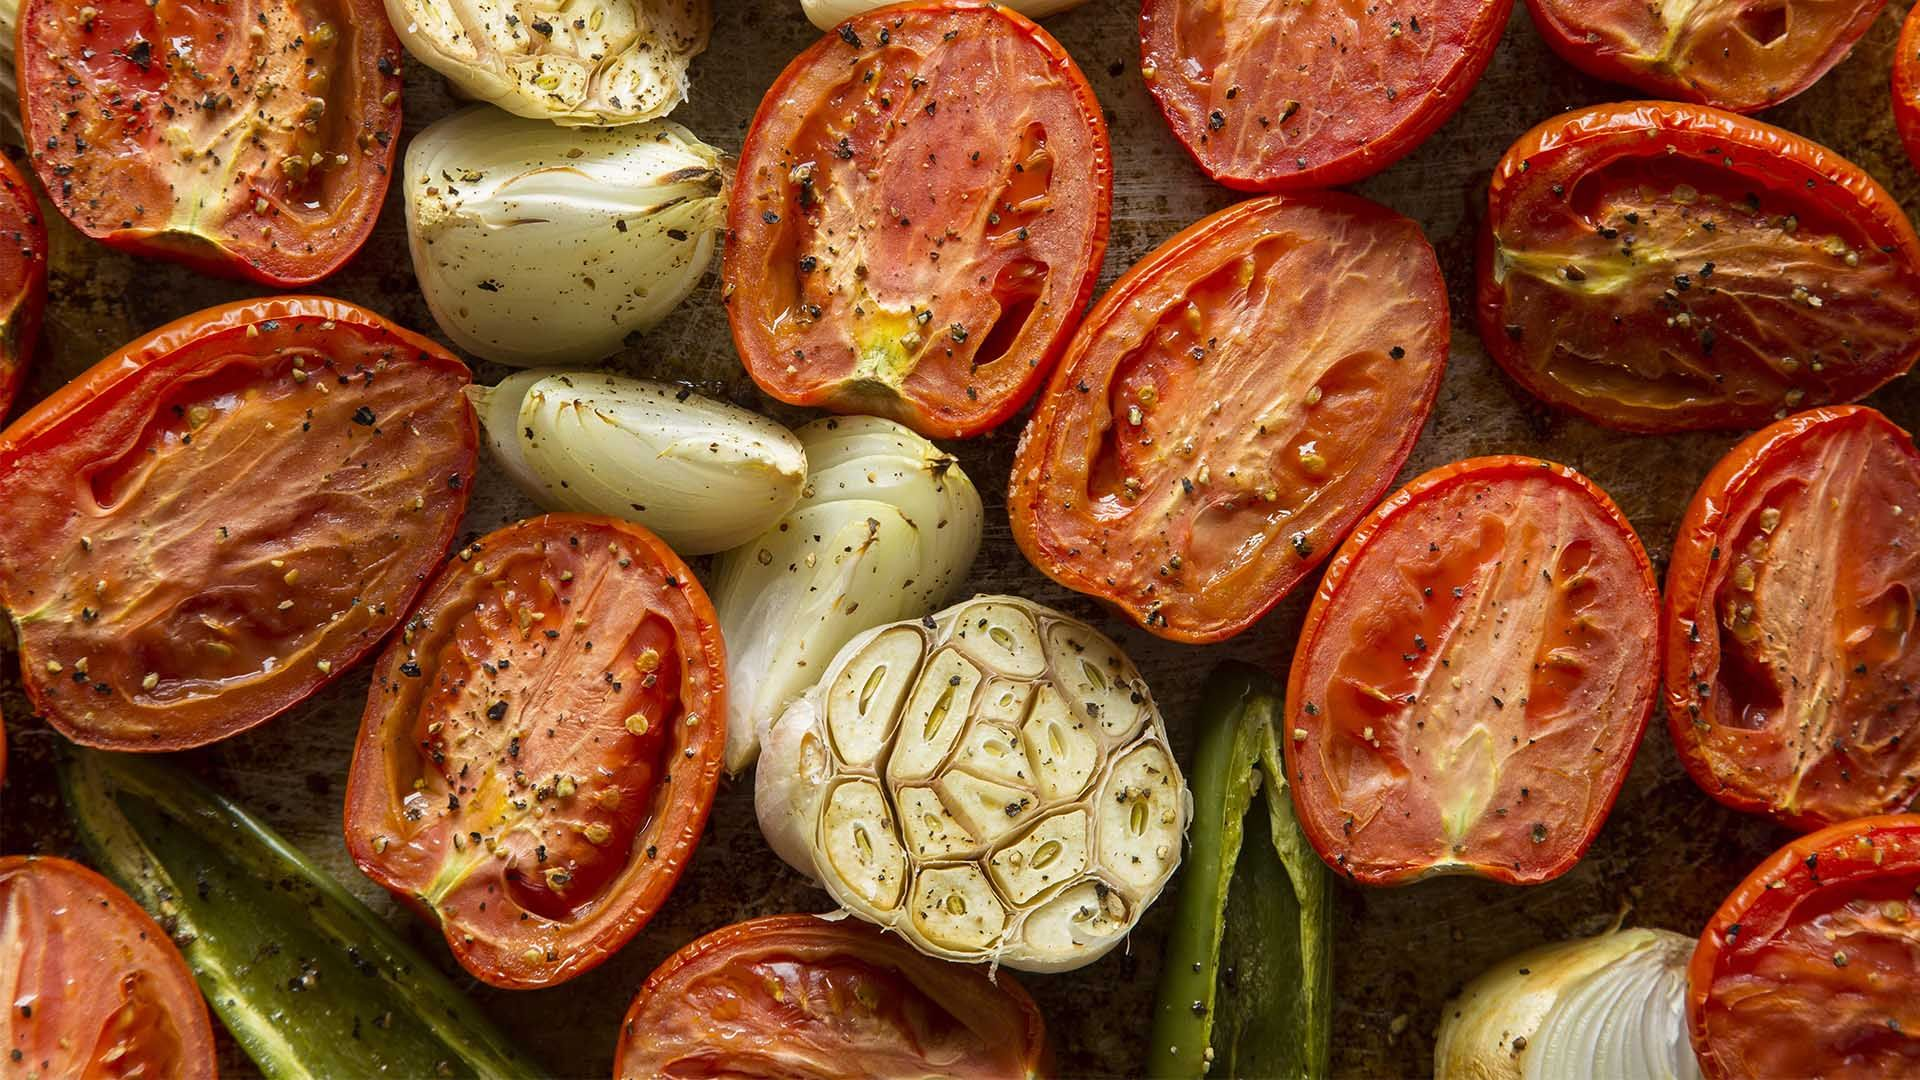 Tomatoes and Onions being cooked on a grill pan